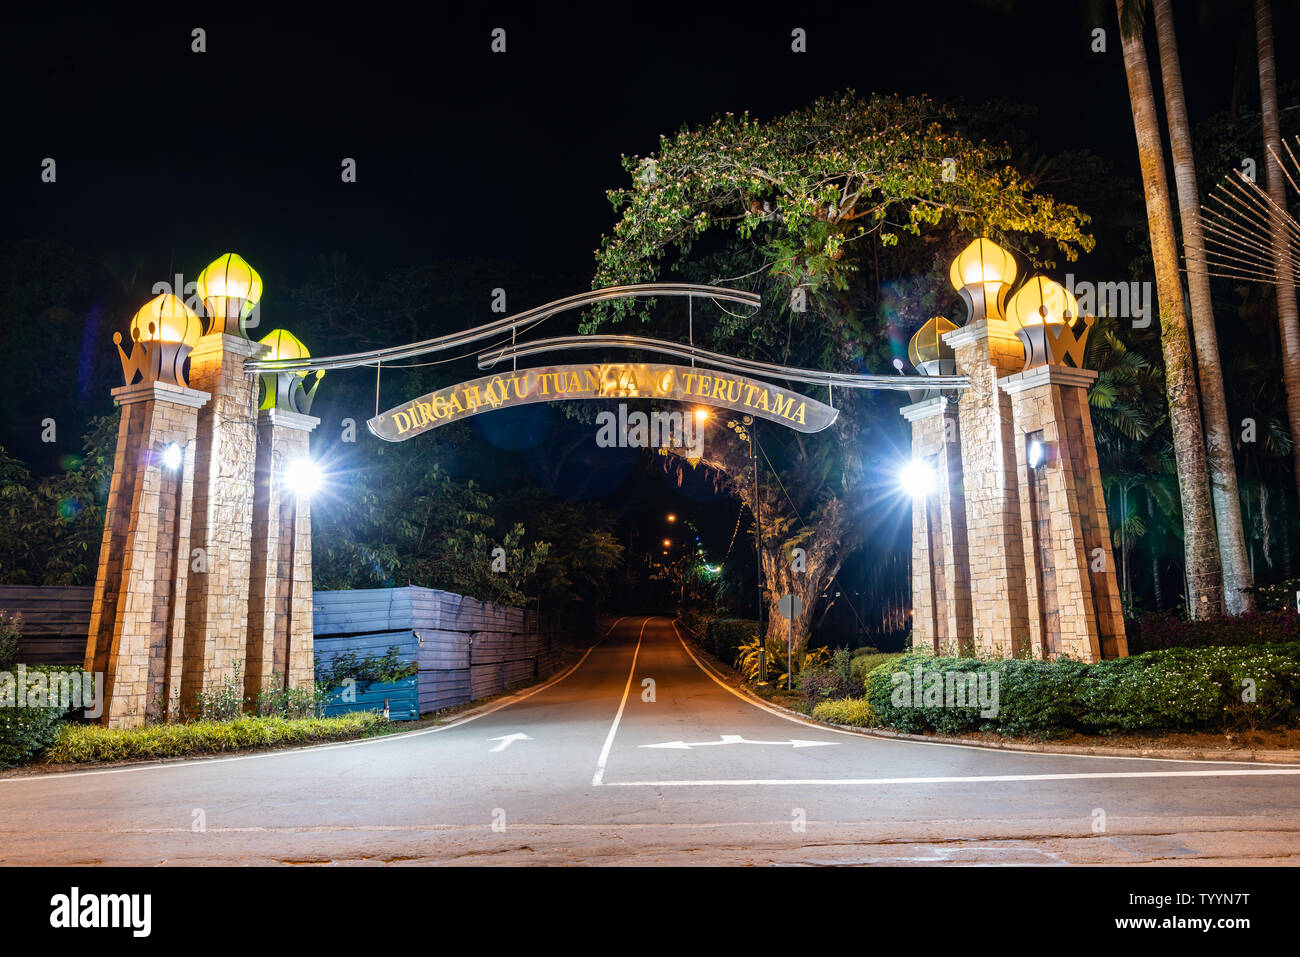 KOTA KINABALU BORNEO - MAY 30 2019; Entrance arch across street illuminated at night. - Stock Image